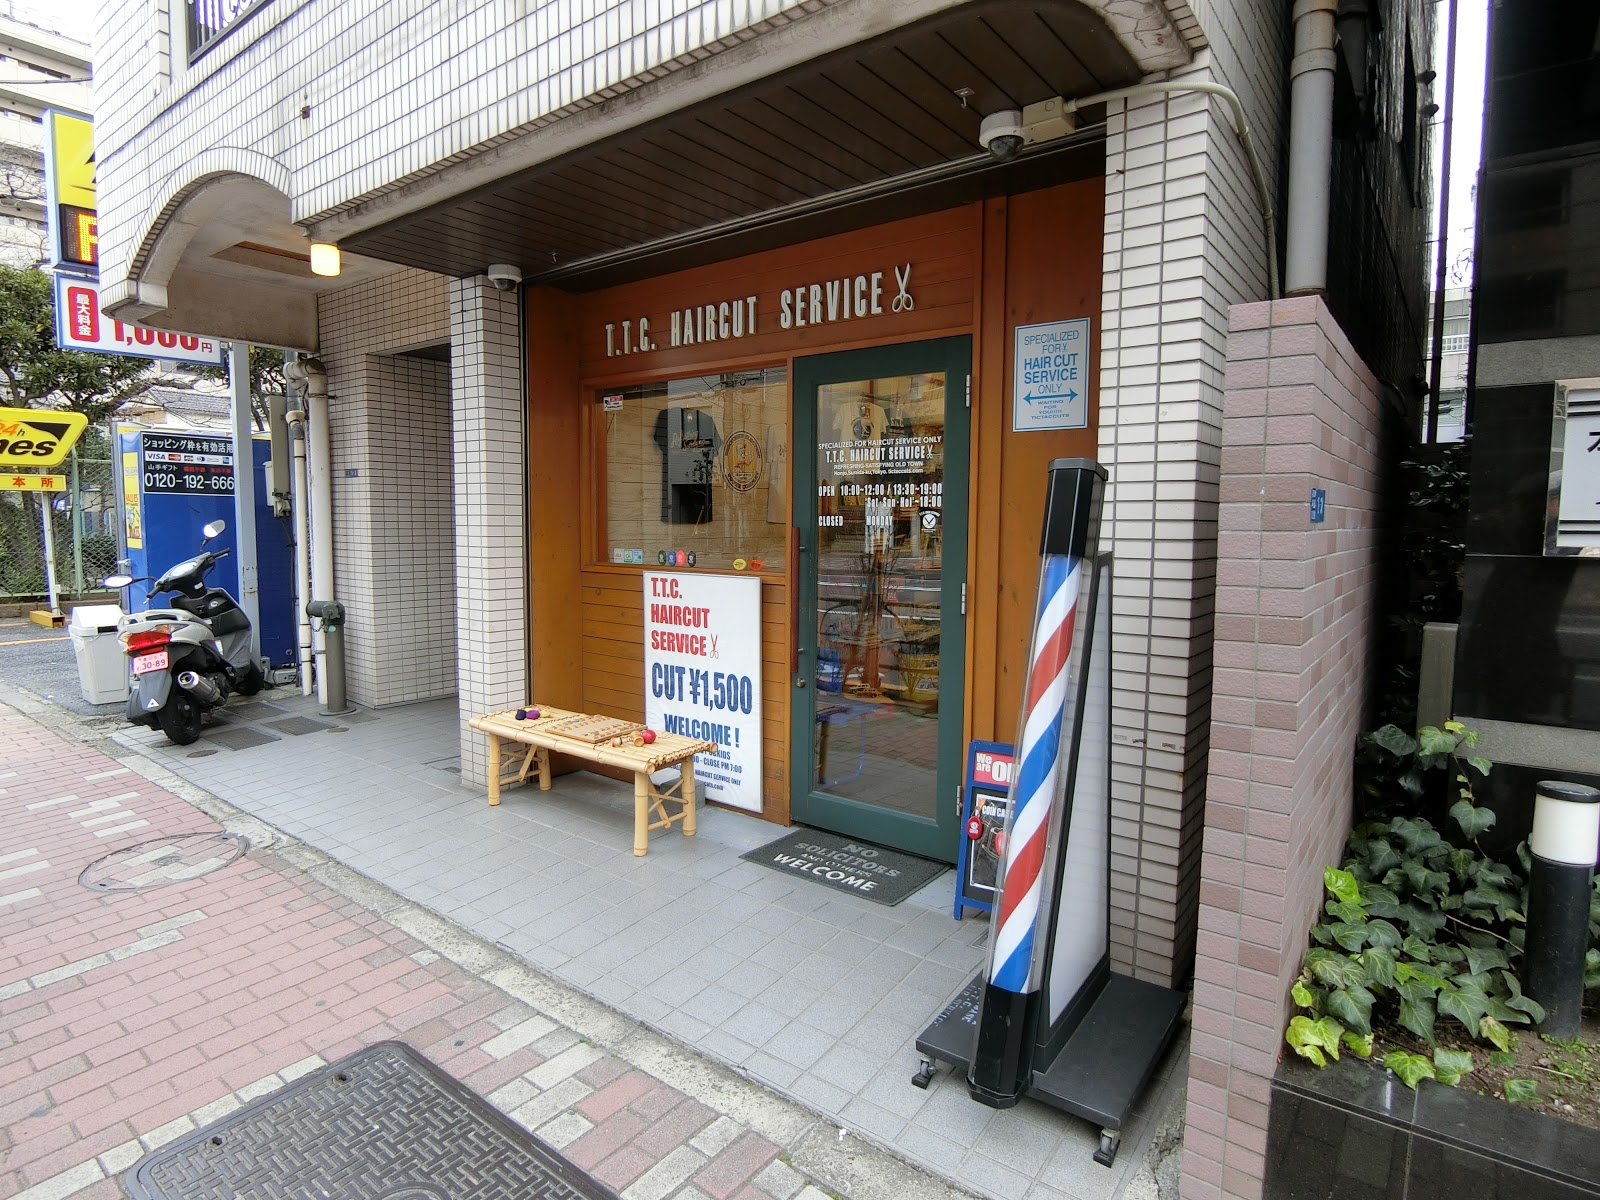 T.T.C. HAIRCUT SERVICEの風景